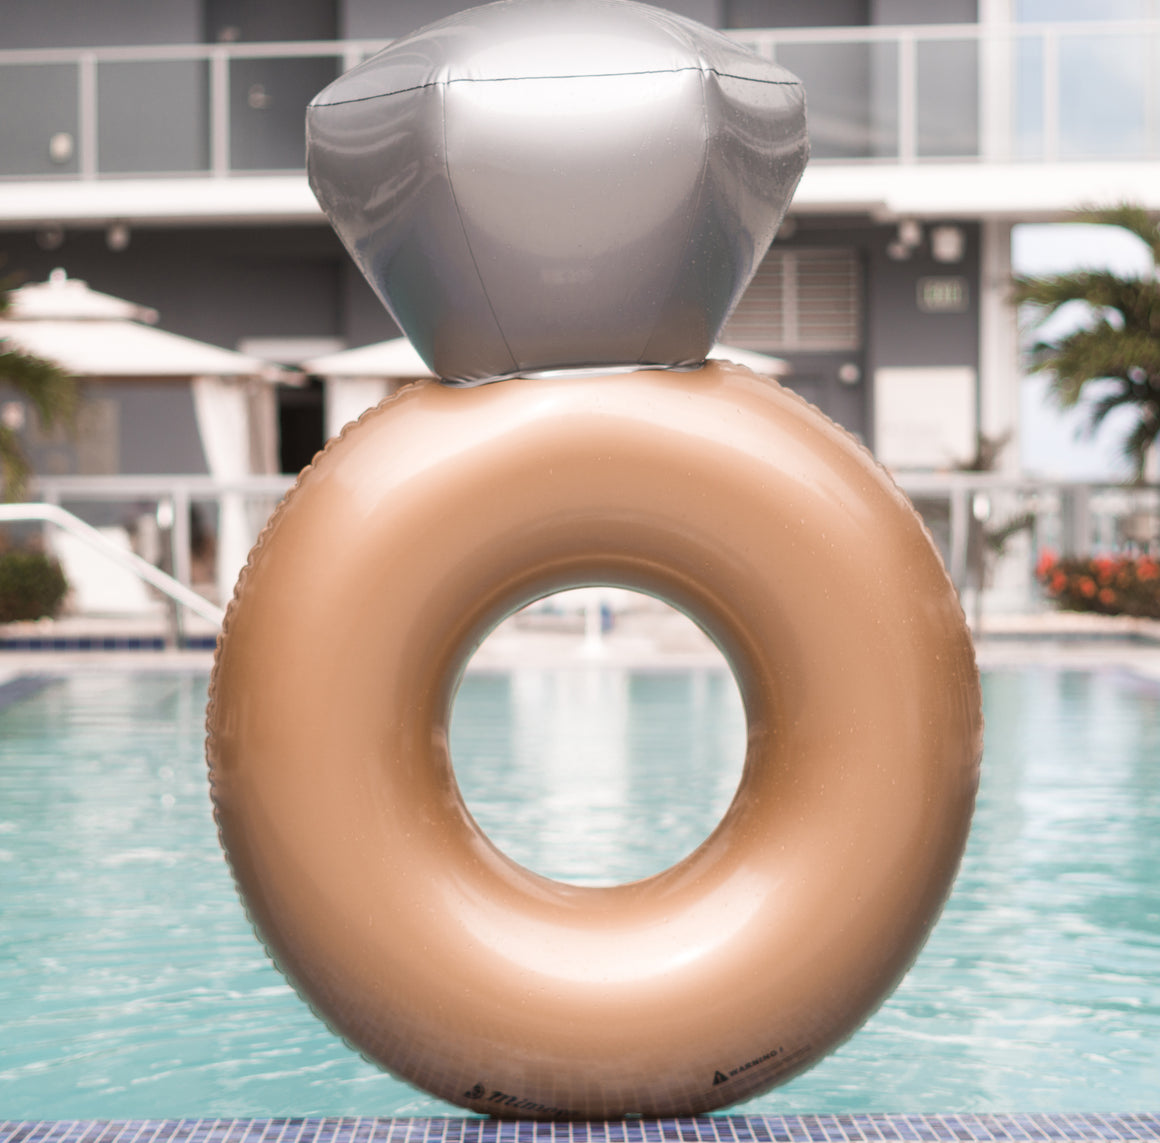 Diamond Engagement ring pool float by Mimosa Inc